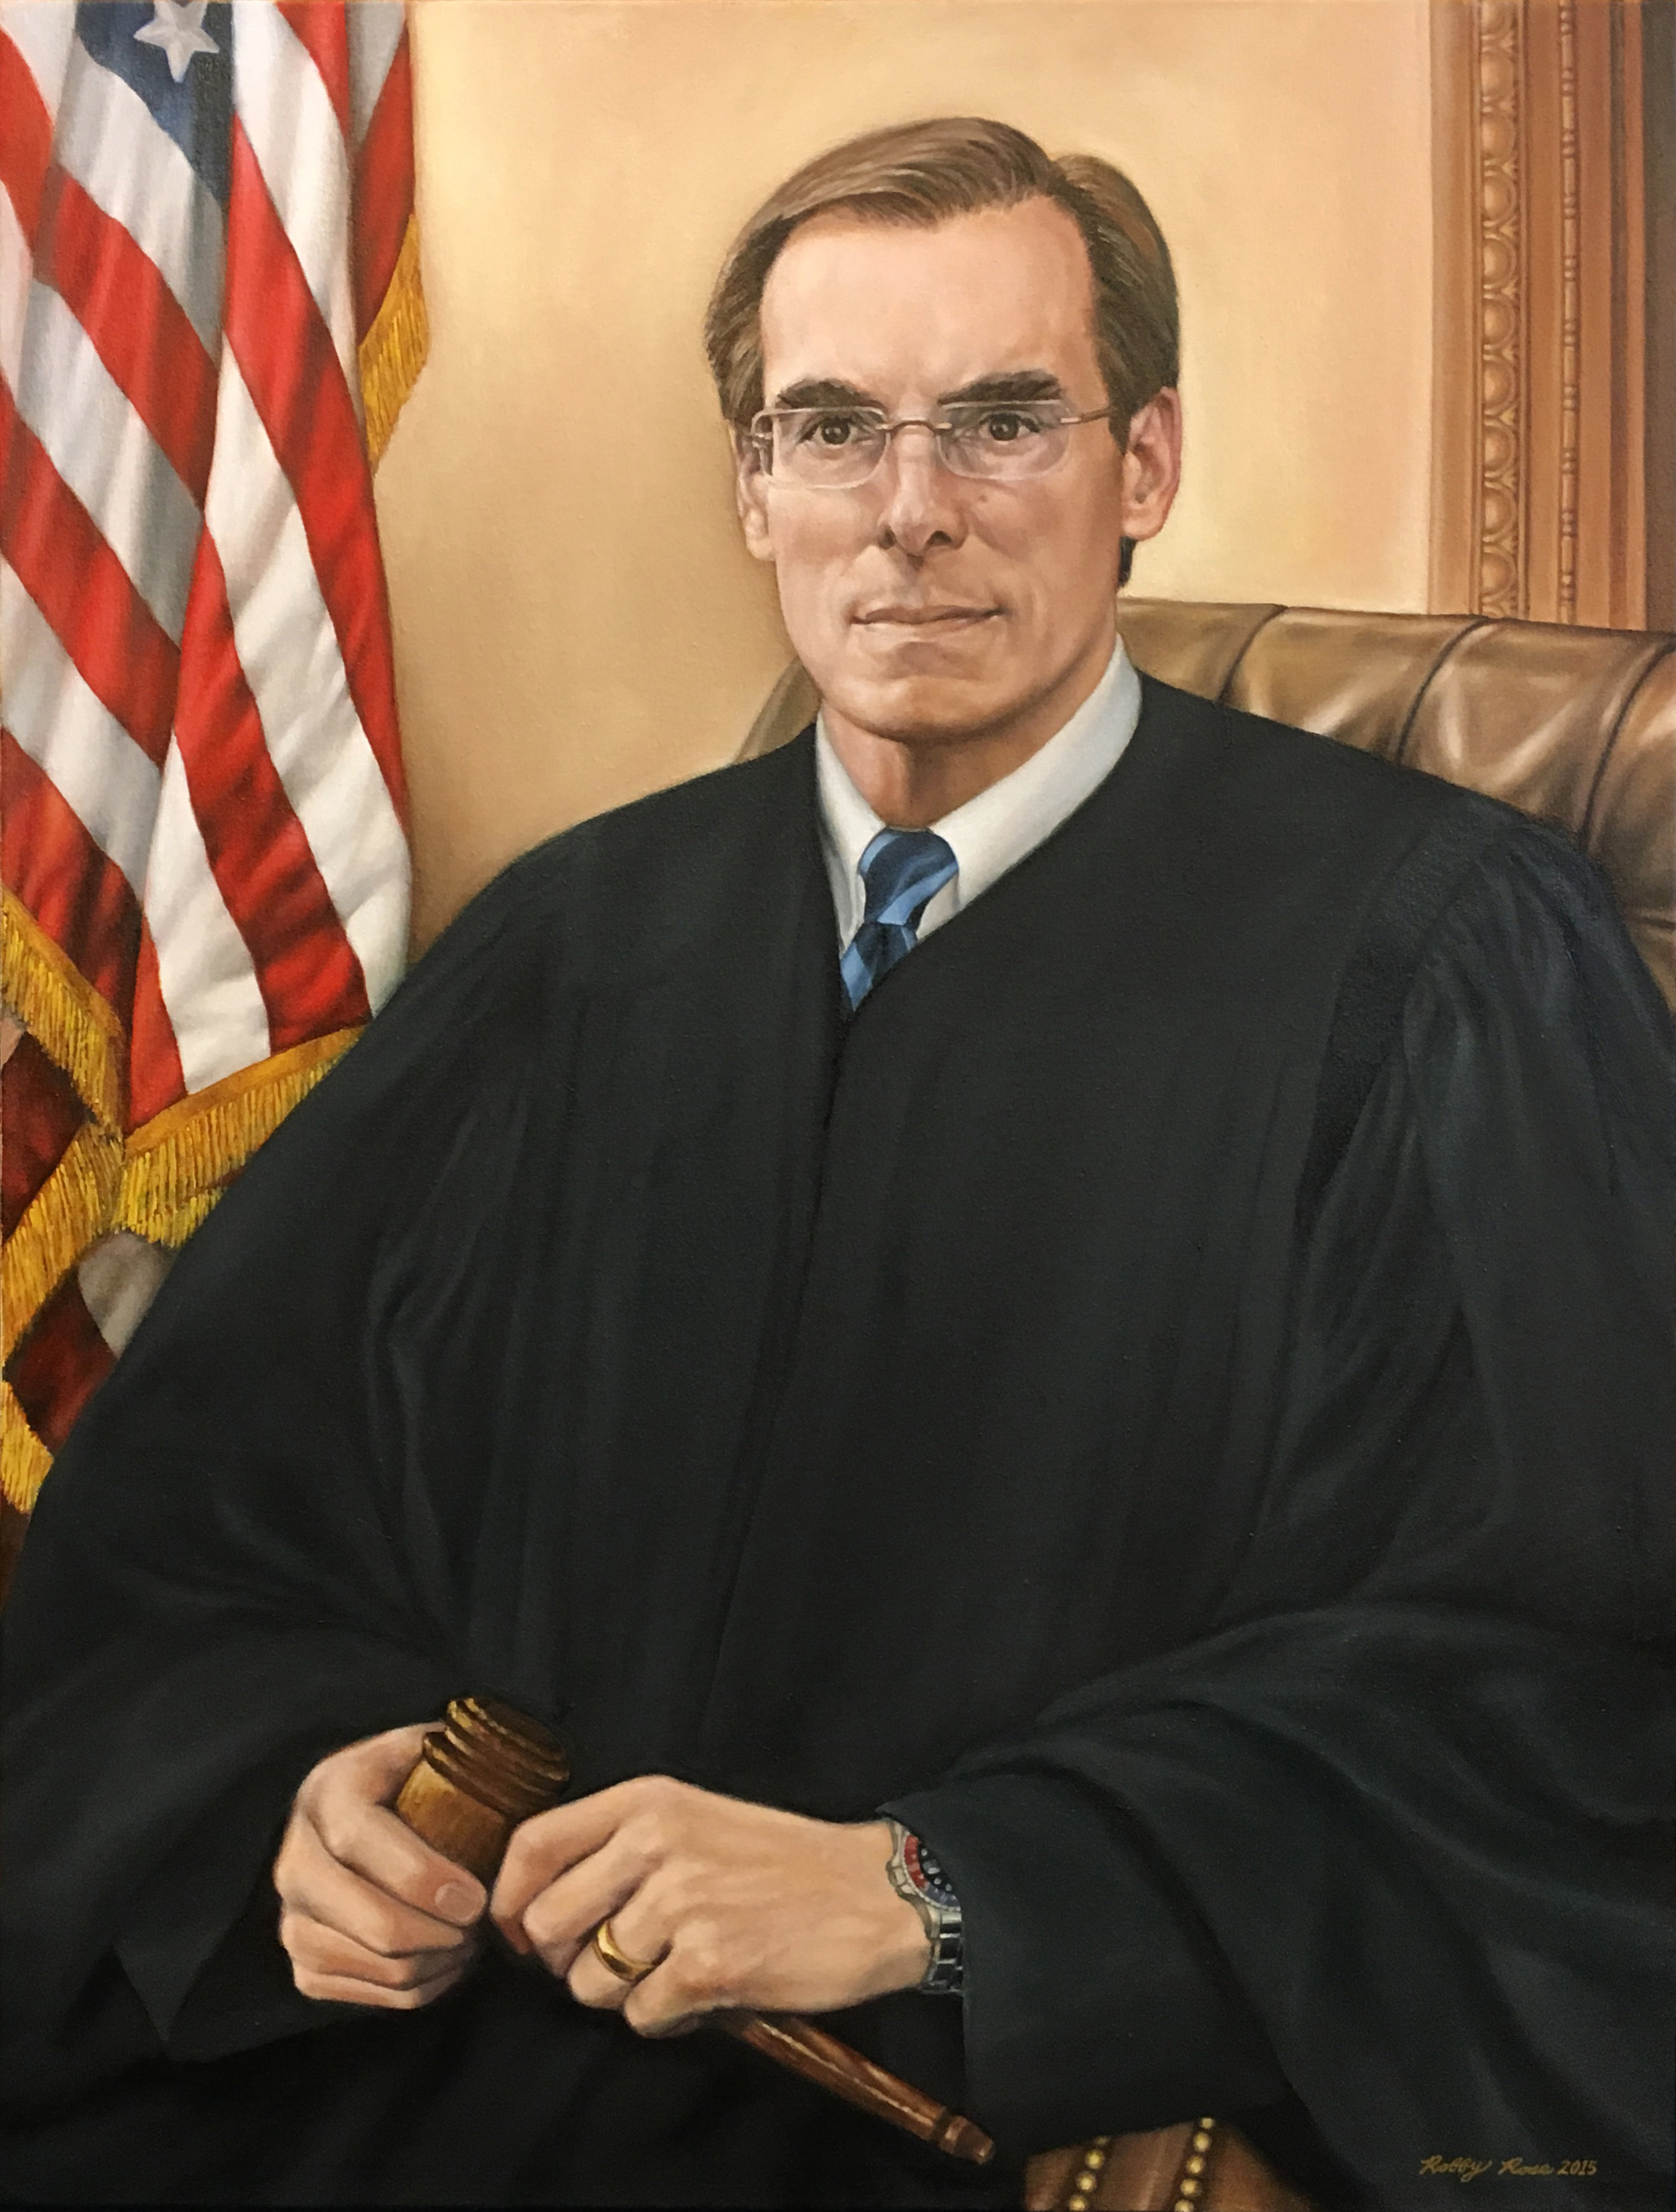 Hon. Robert S. Rose, Justice of the New York State Supreme Court, Appellate Division, Third Department